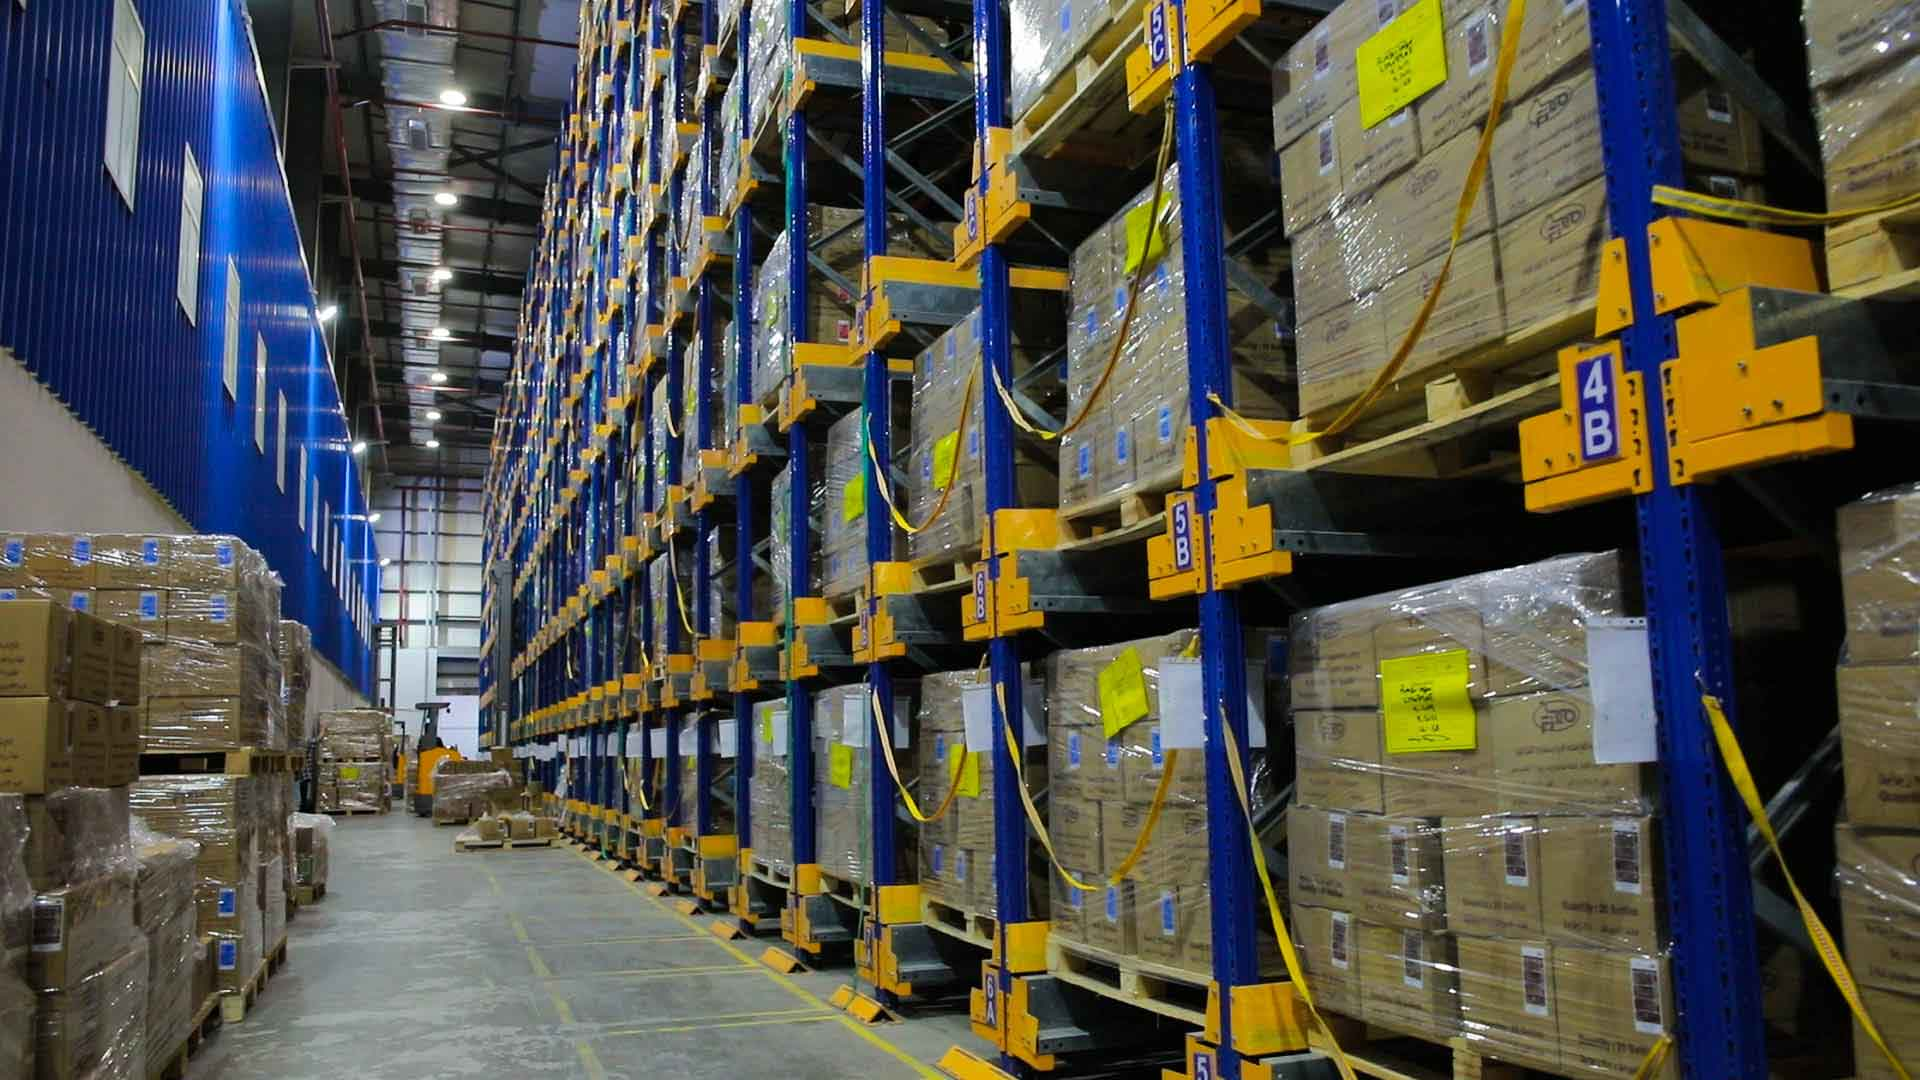 WHY PALLET SHUTTLE SYSTEM IS NEEDED FOR YOUR WAREHOUSE?